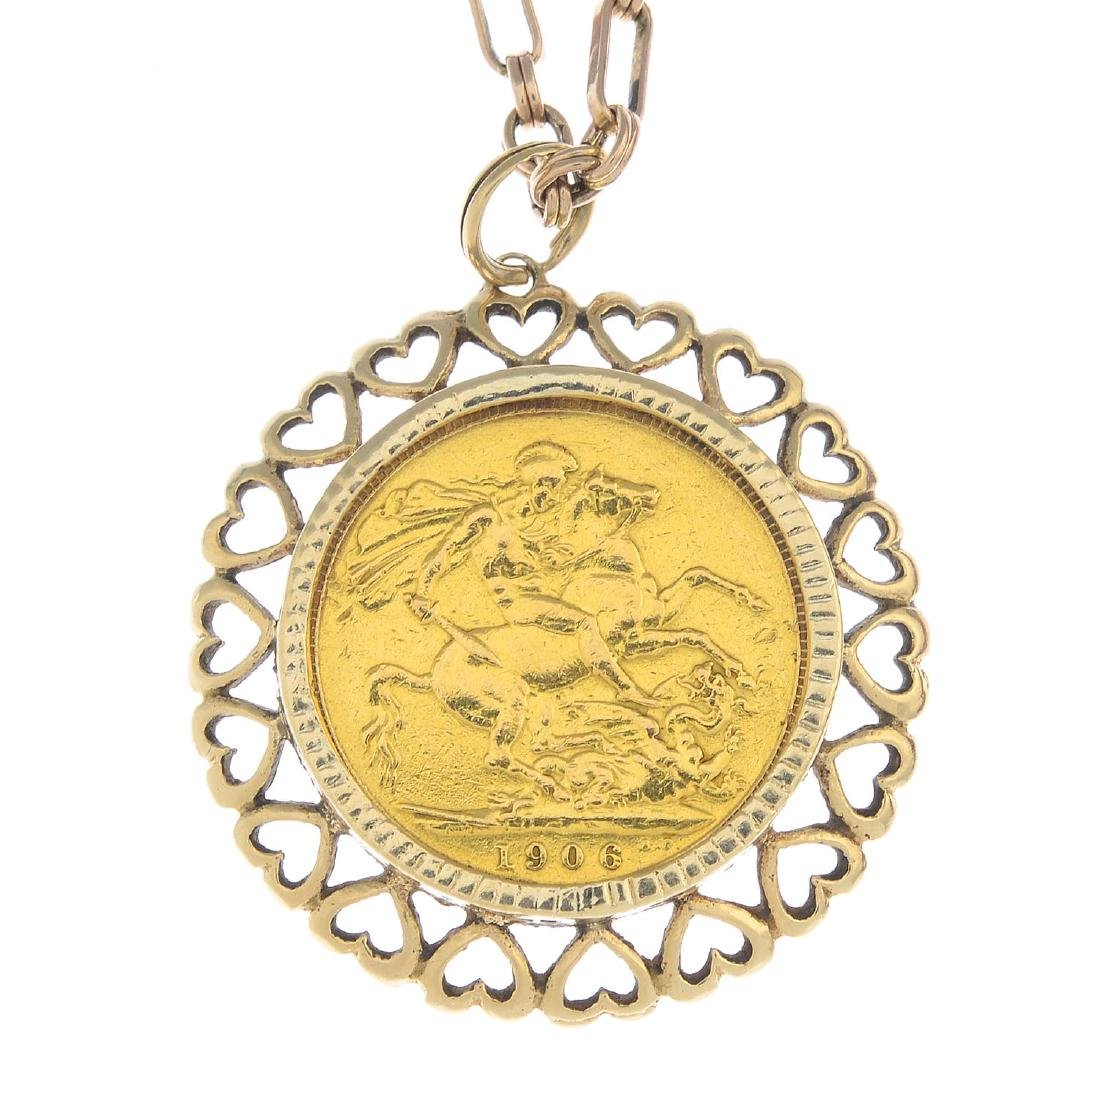 (22426) A sovereign pendant. The full sovereign coin,